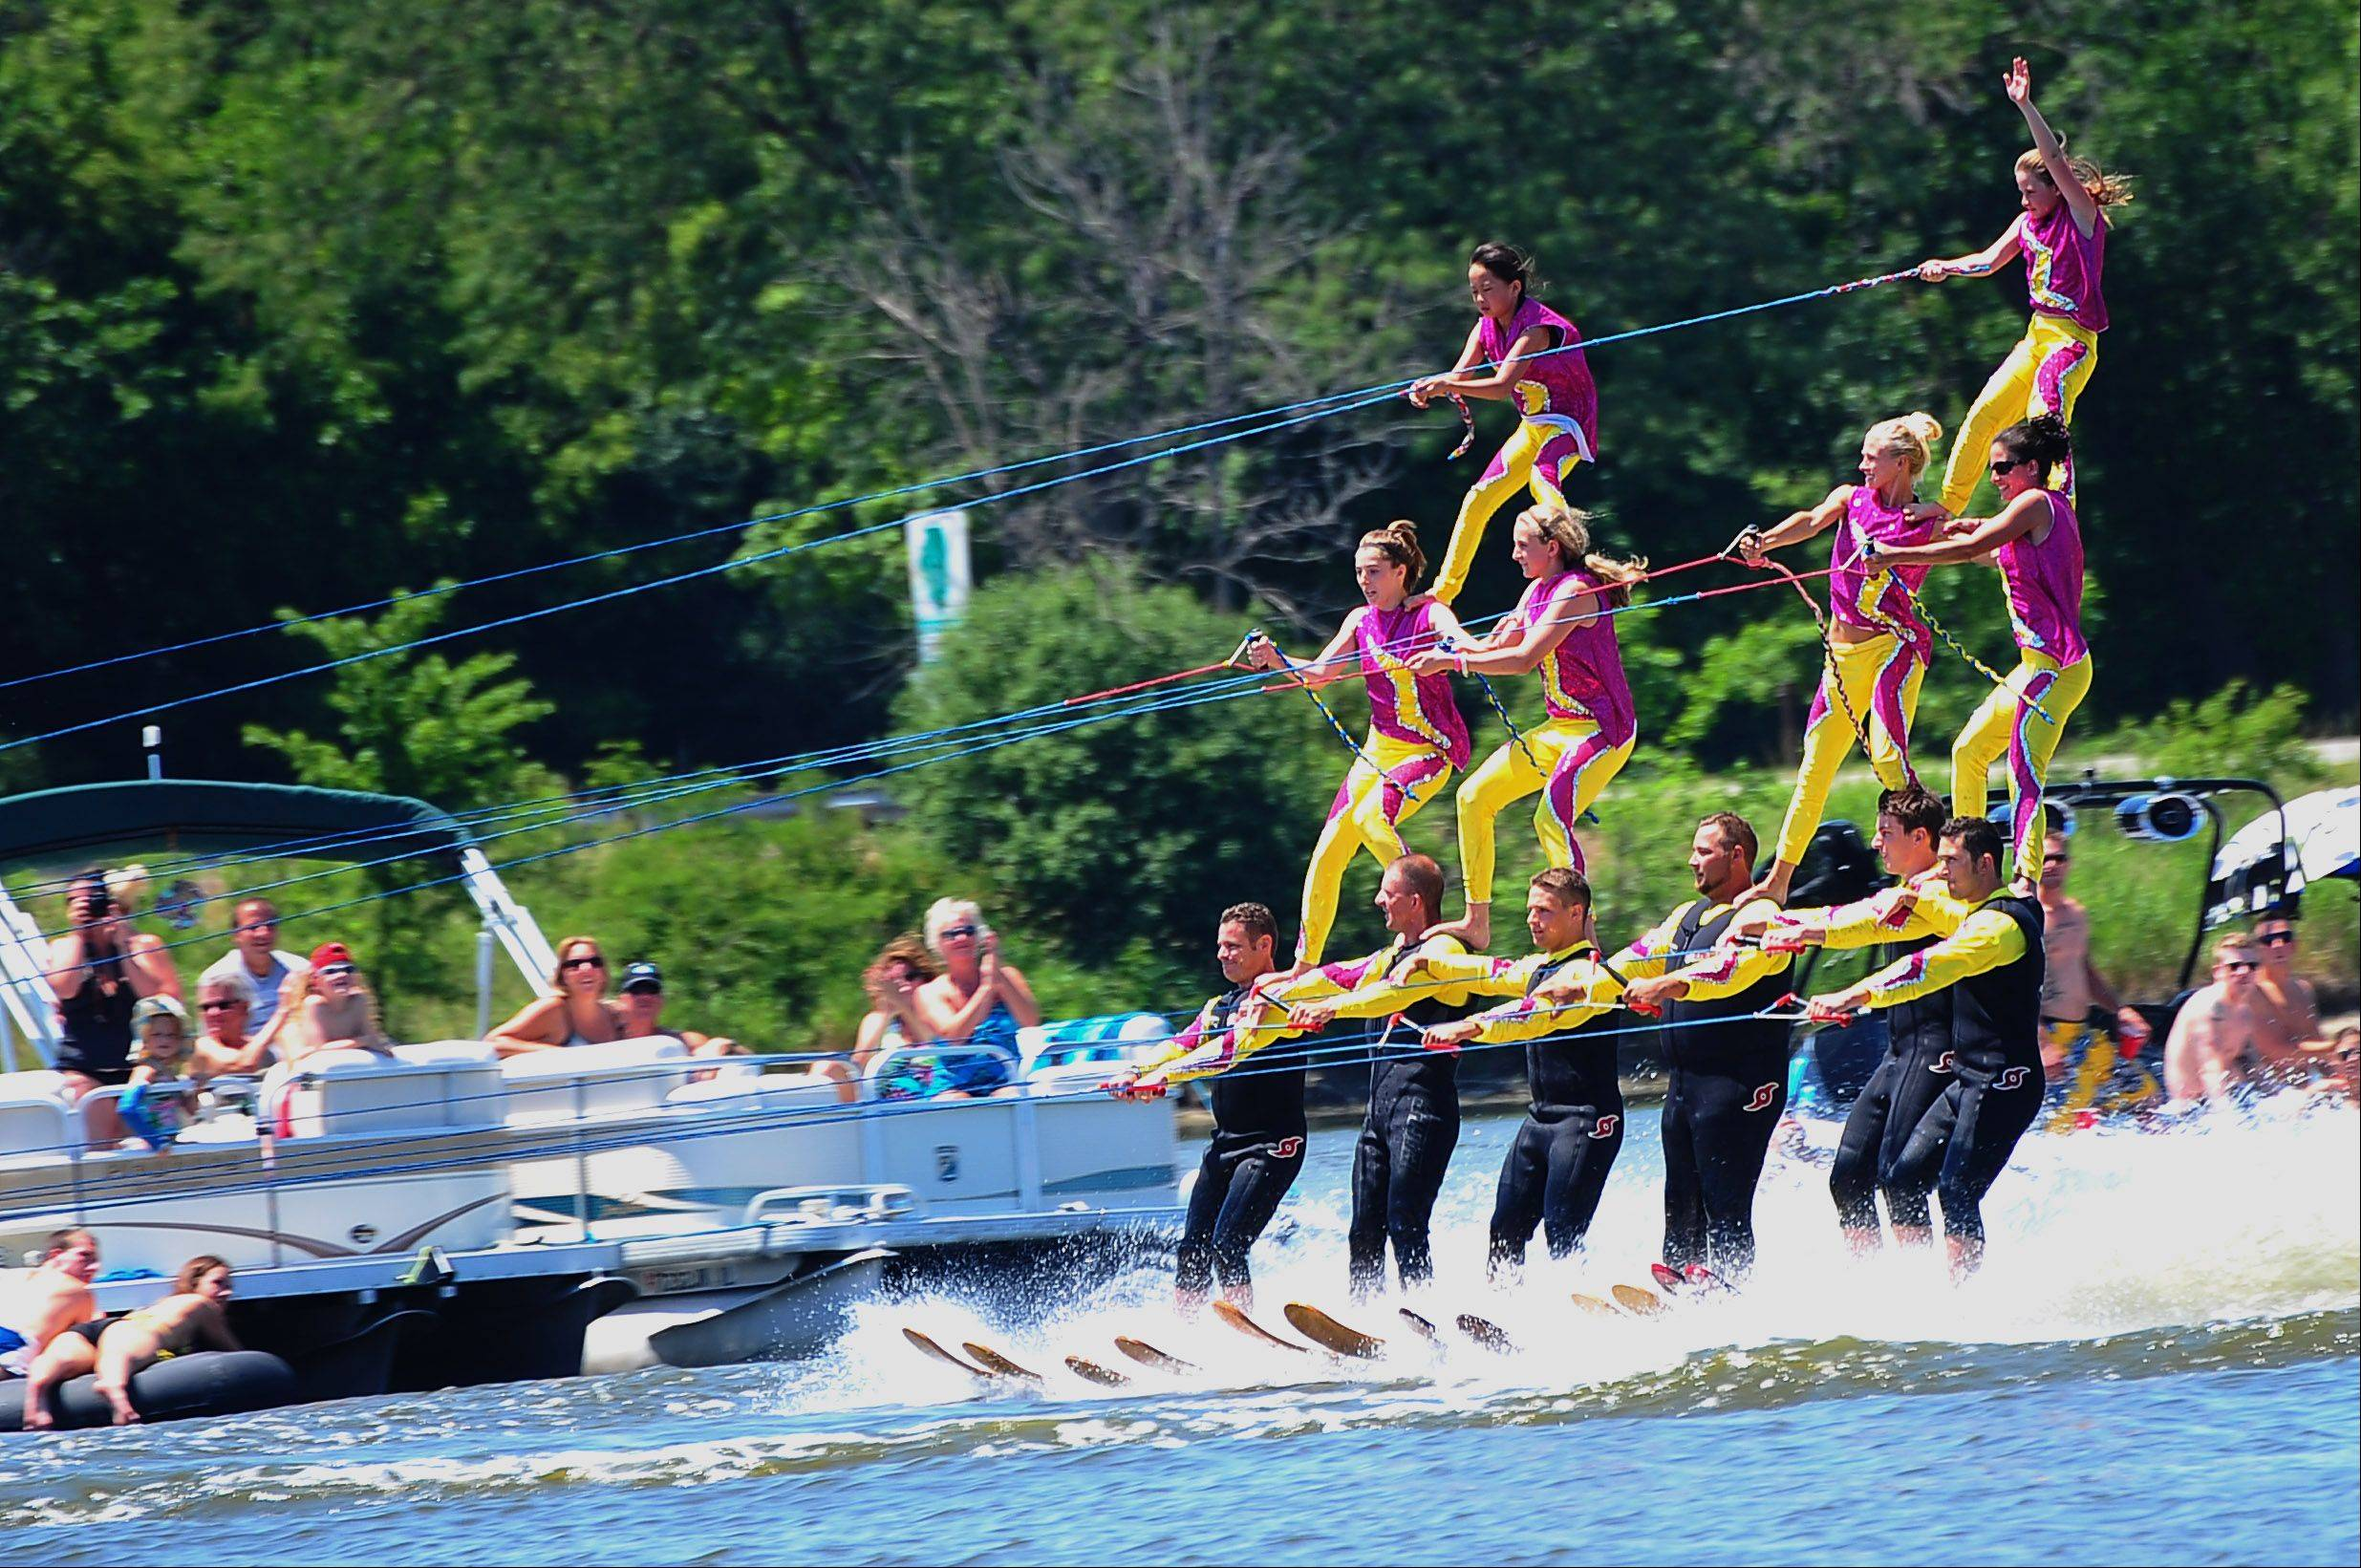 Members of the Wonder Lake Ski Team entertain spectators and boaters at last year's RiverFest.